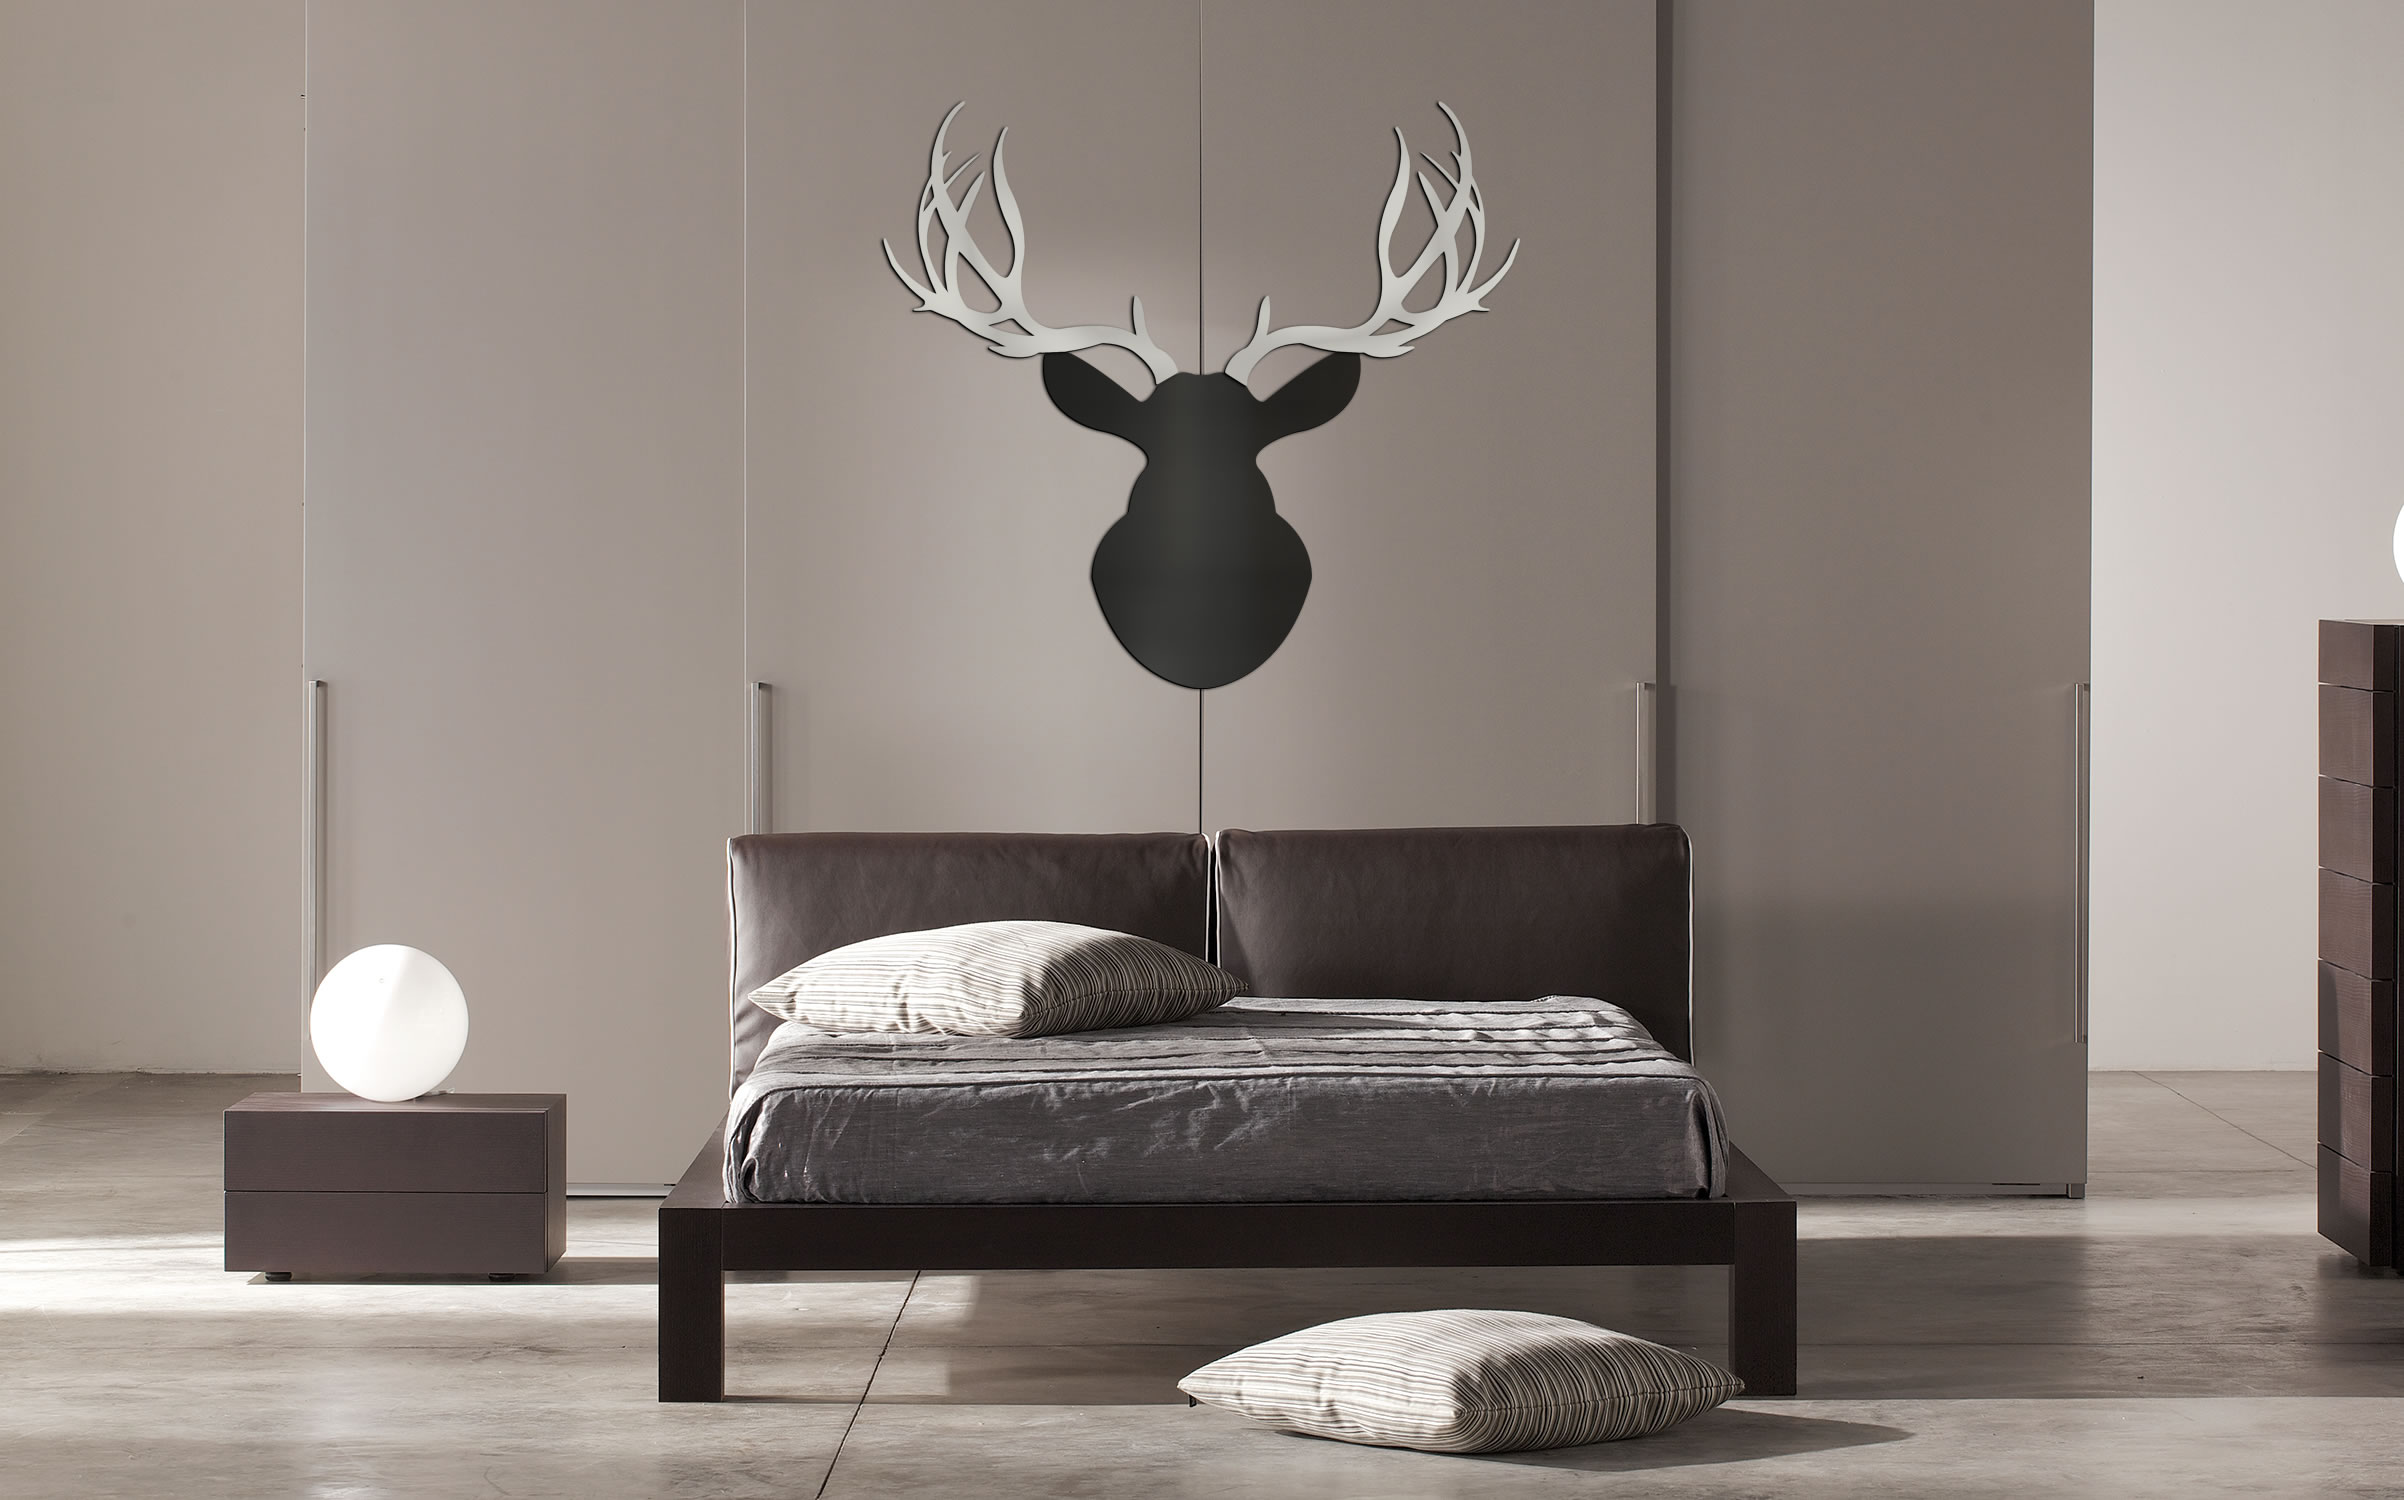 URBAN BUCK - 36x36 in. Black & Silver Deer Cut-Out - Lifestyle Image